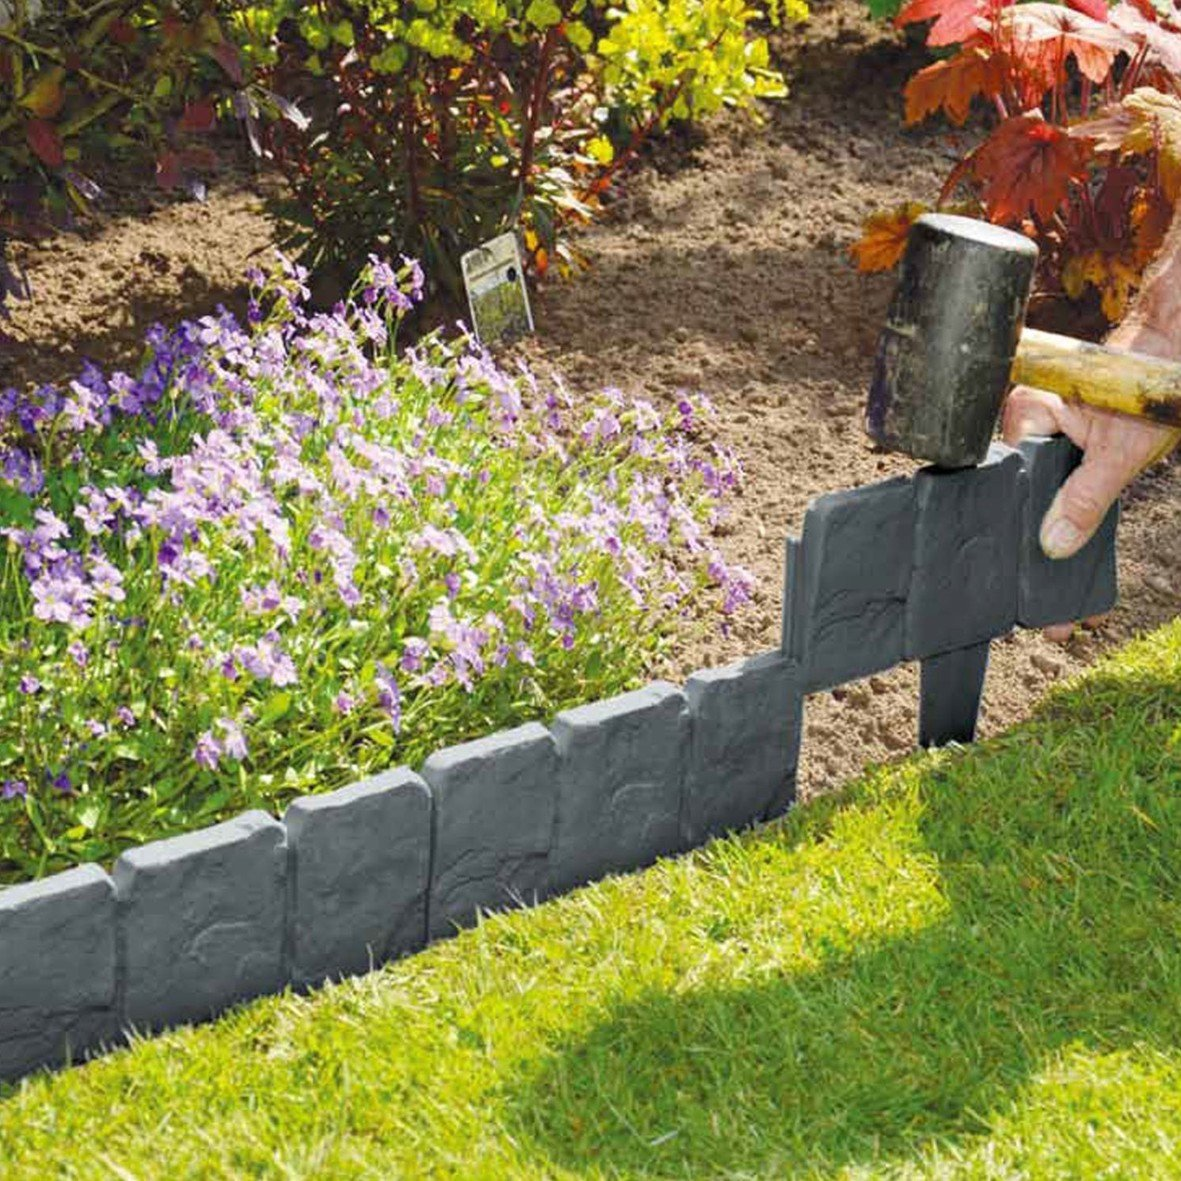 20 Pack Grey Cobbled Stone Effect Plastic Garden Lawn Edging Plant Border 5M (20) Mooin Joinin